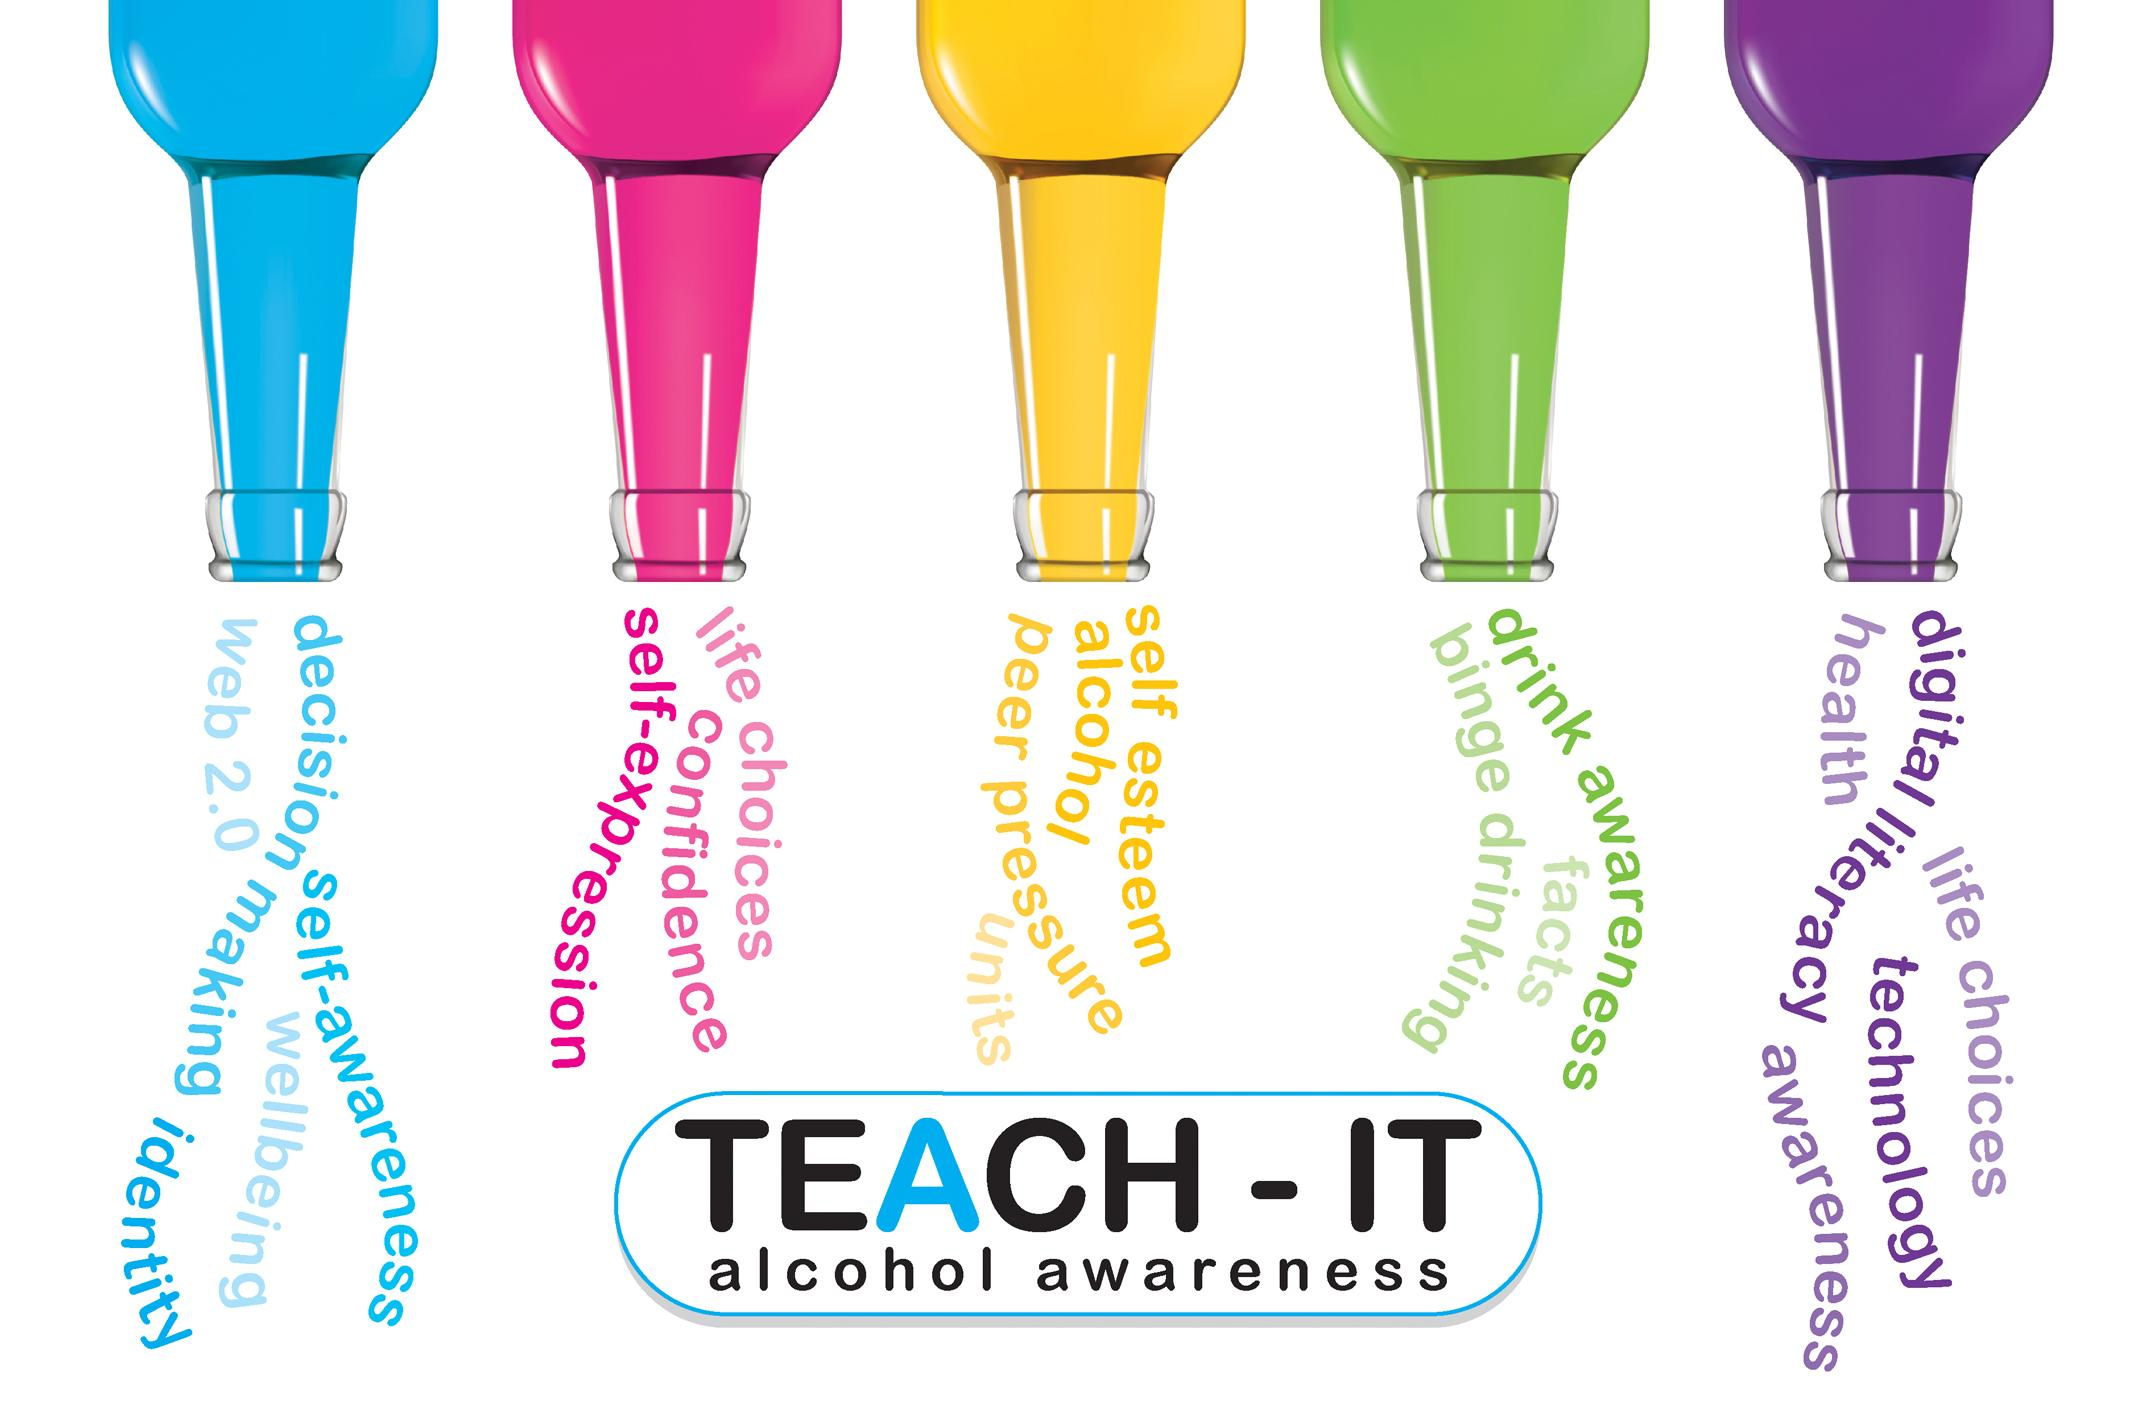 Alcohol clipart alcohol awareness. European drinks industry initiatives